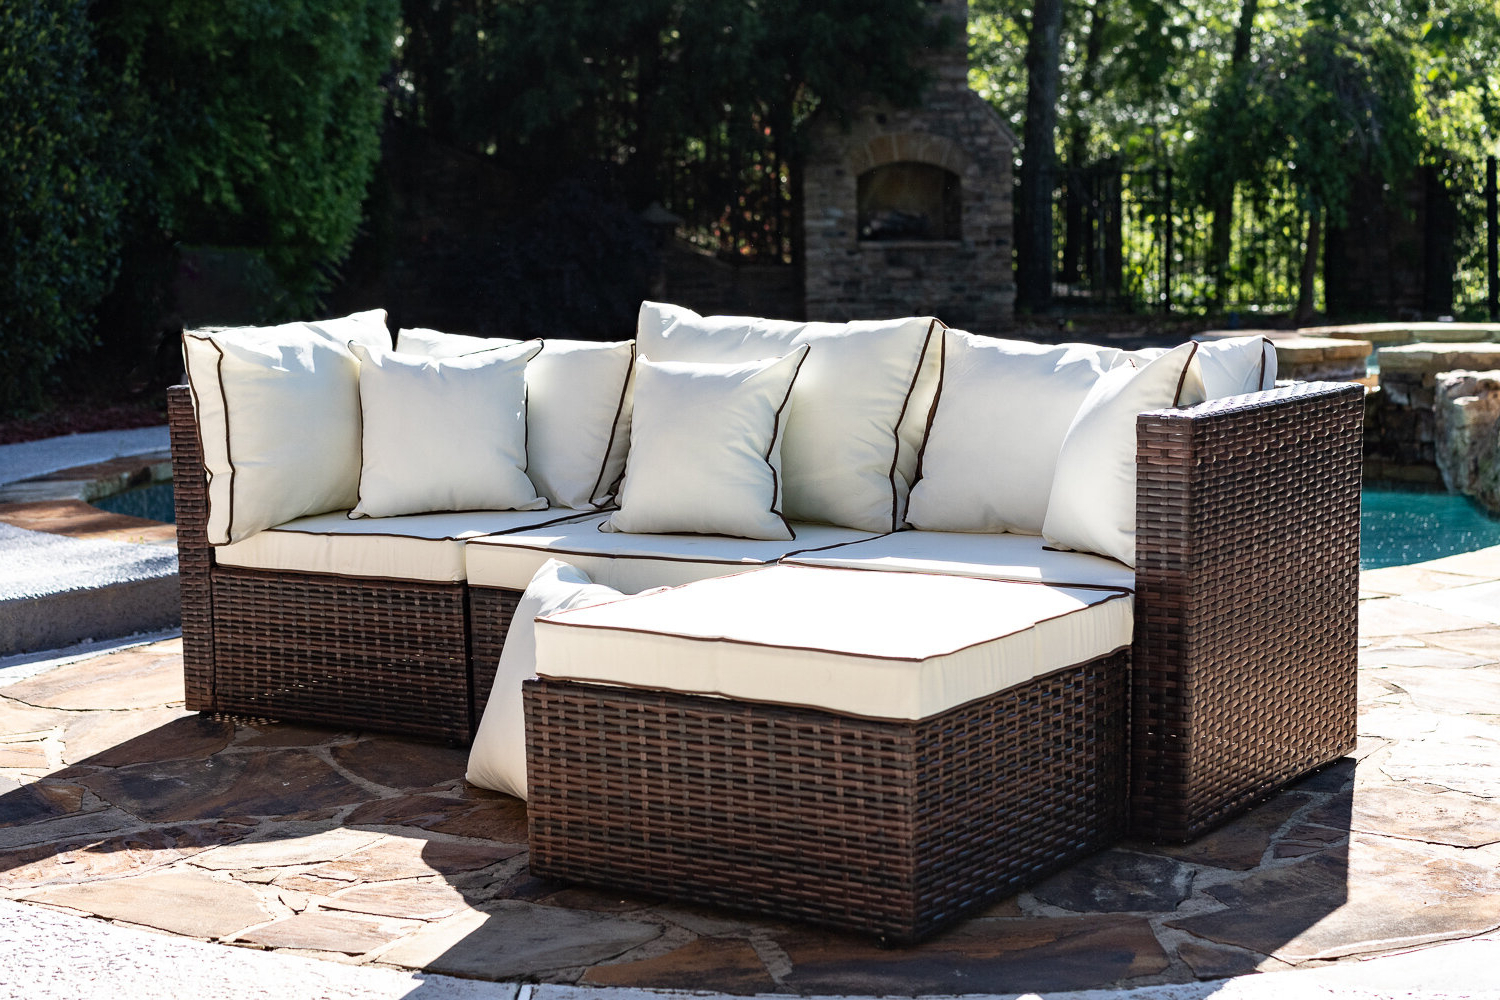 Wayfair With Popular Silloth Patio Sofas With Cushions (View 19 of 20)